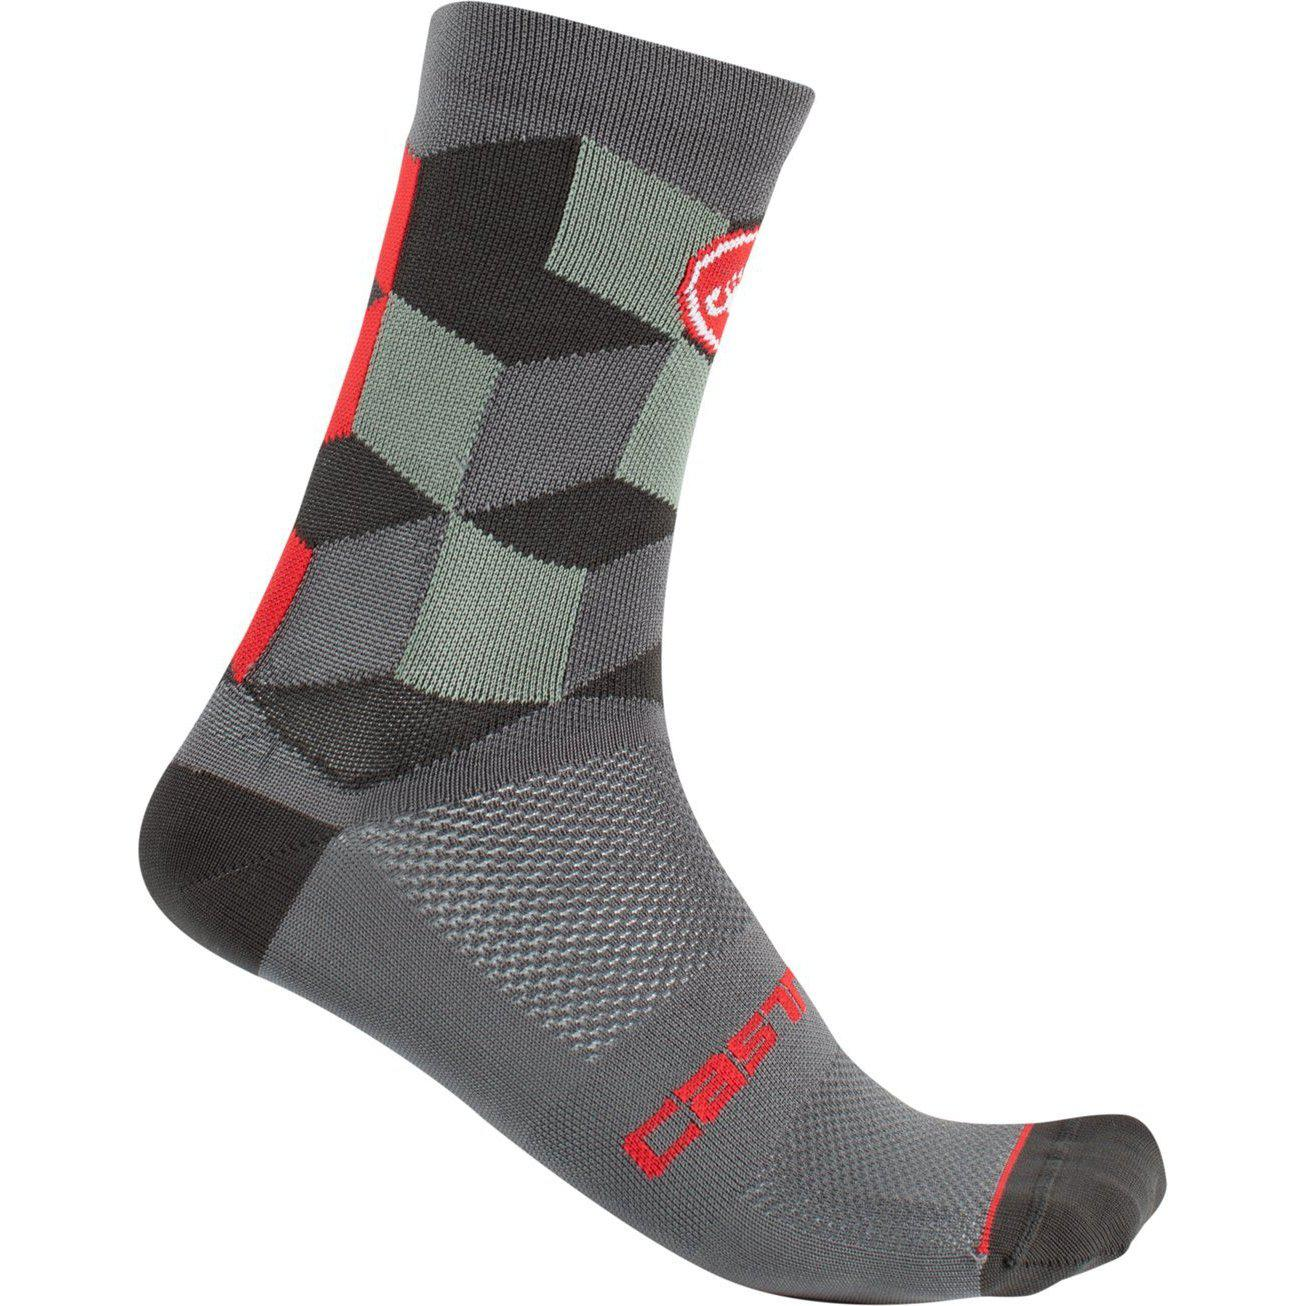 Castelli-Castelli Unlimited 15 Socks-Forest Gray-S/M-CS2004108909-saddleback-elite-performance-cycling